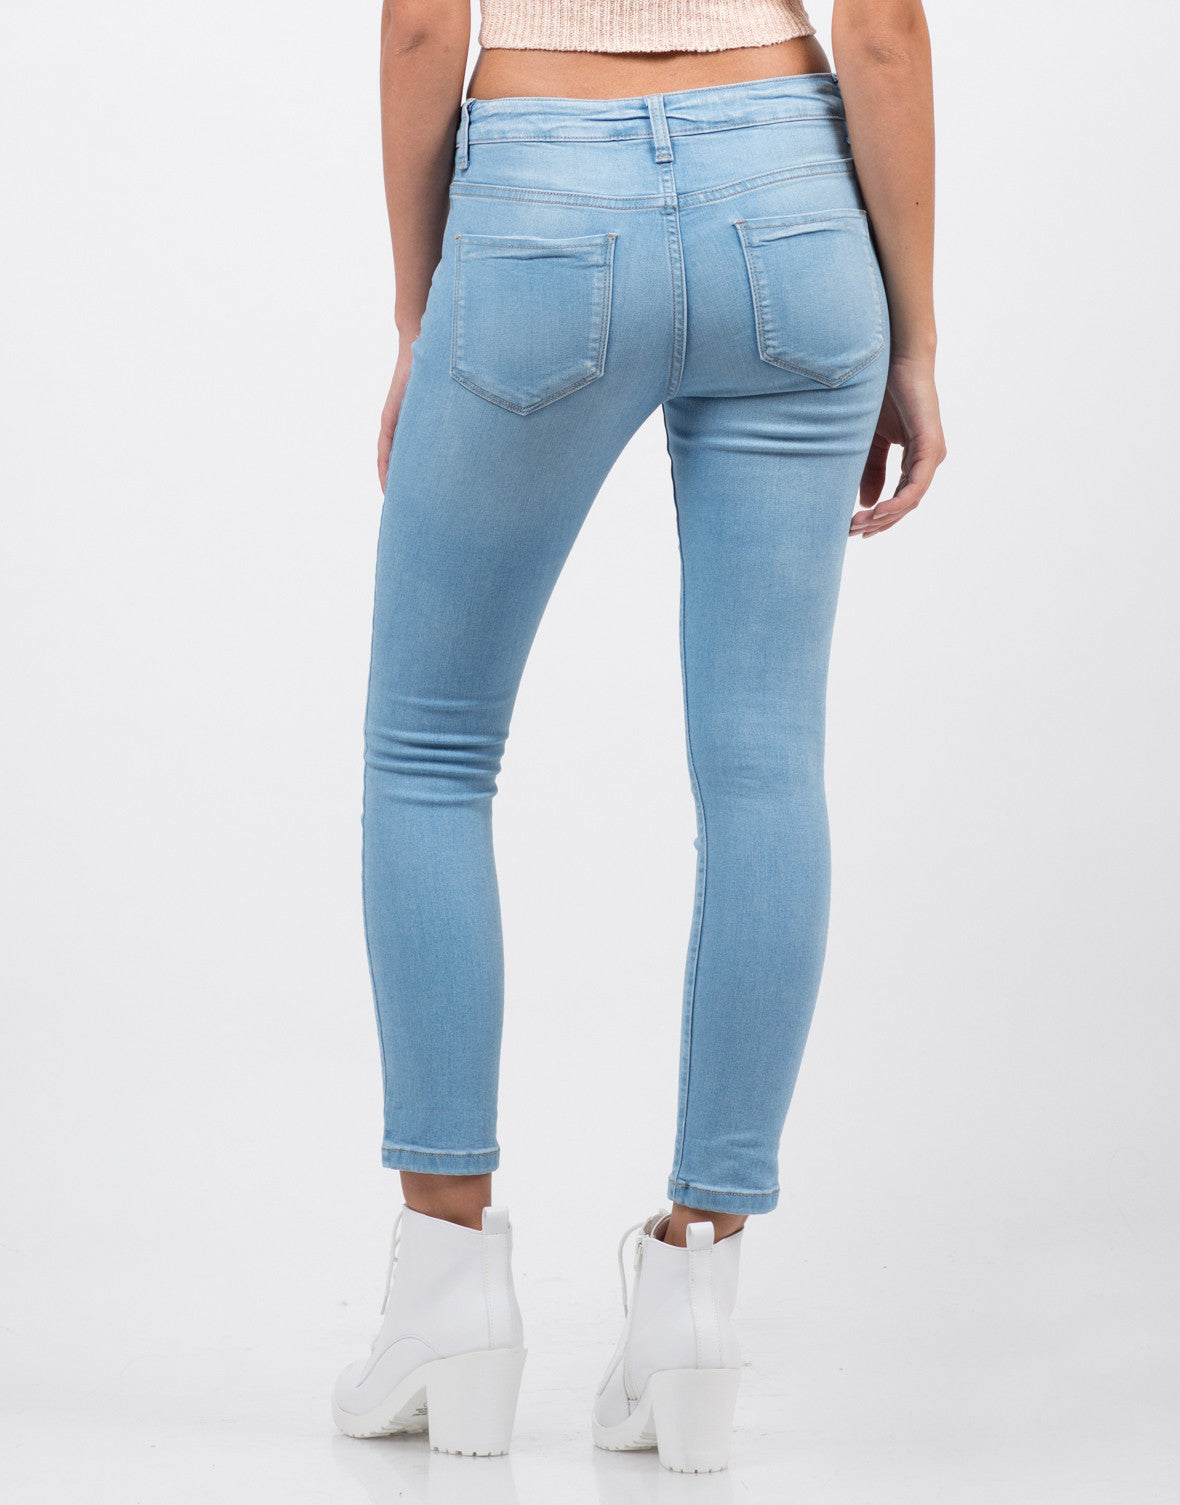 Find great deals on eBay for light blue jeans. Shop with confidence.